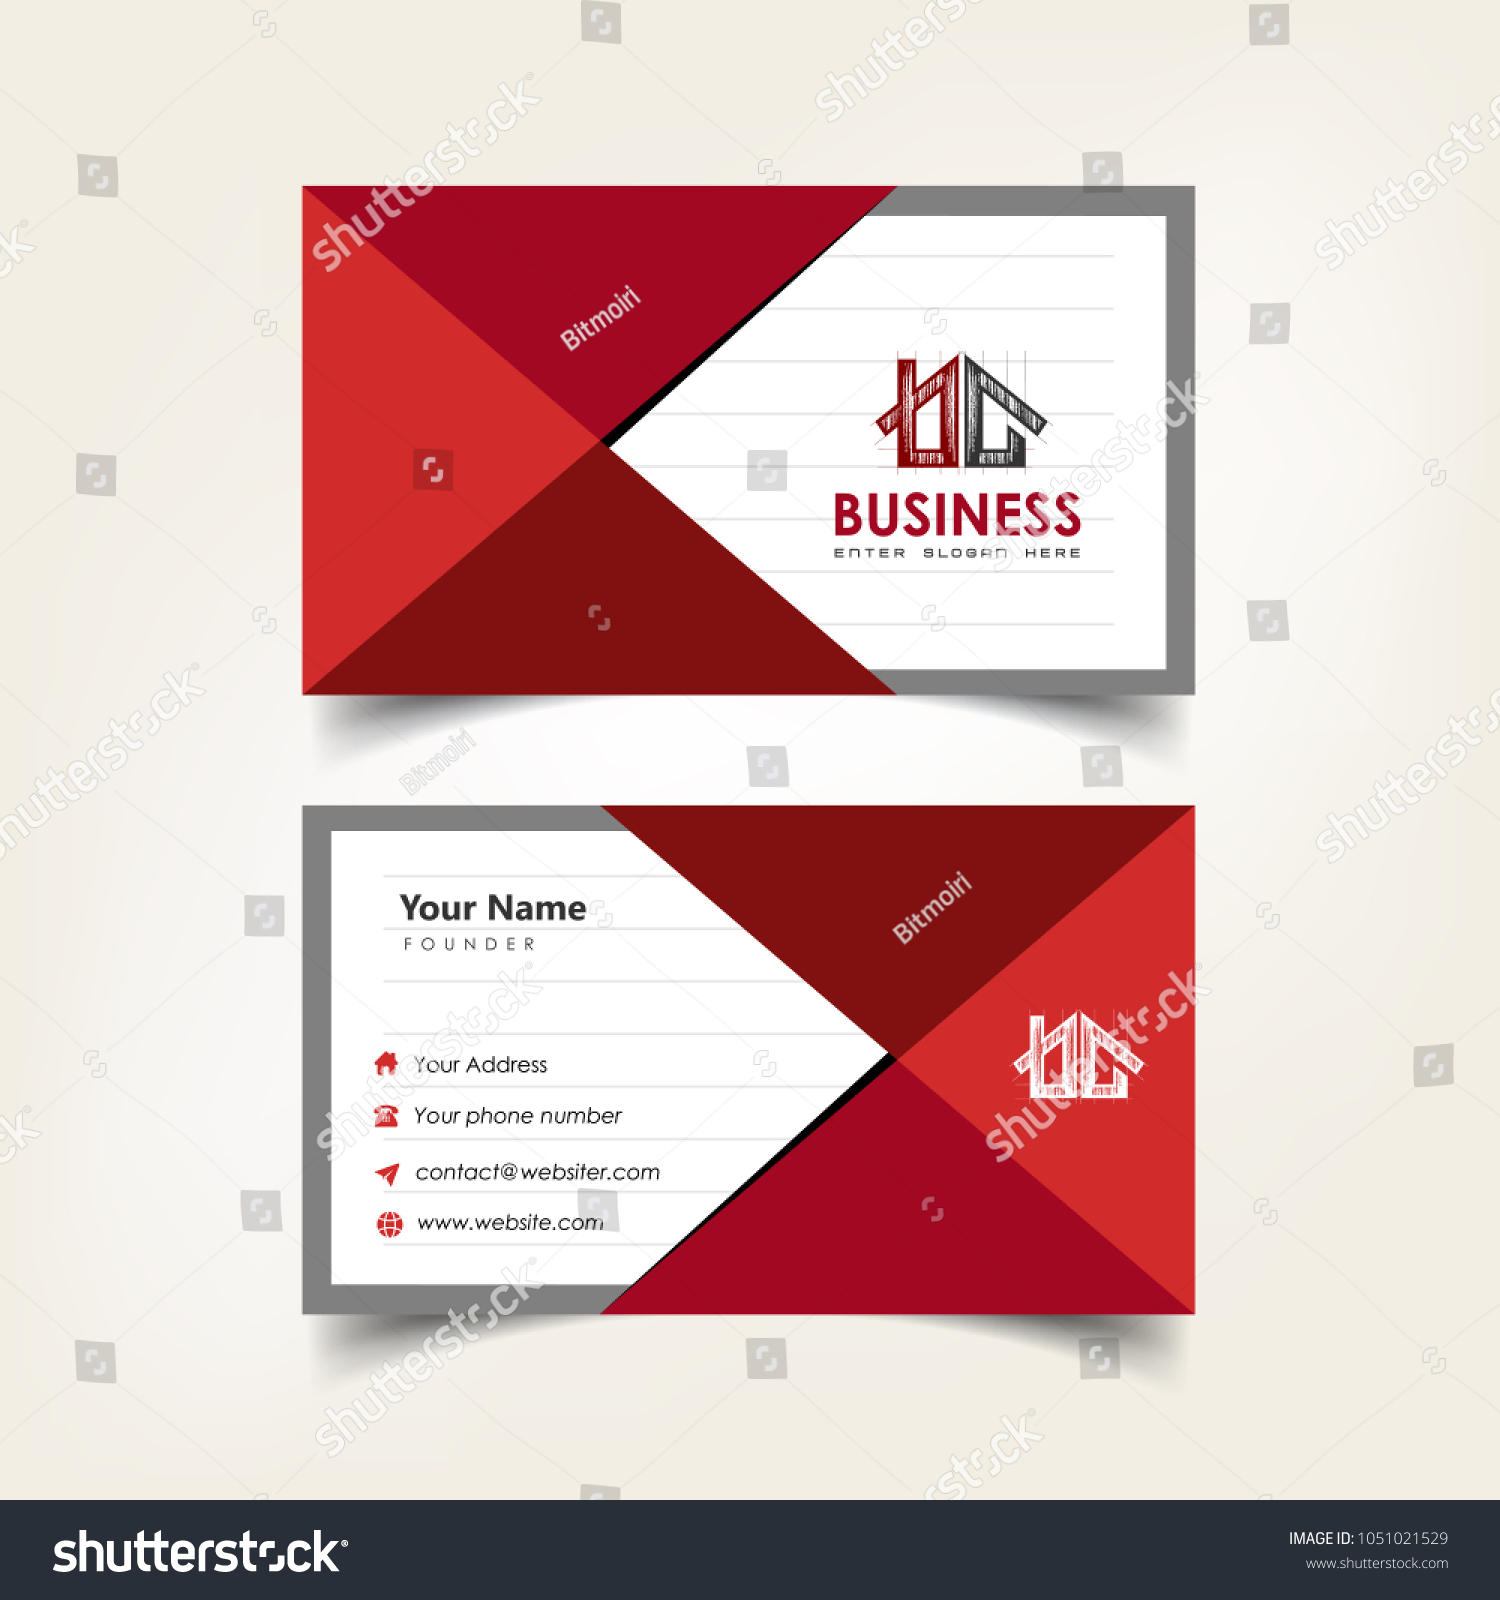 Simple Elegant Business Card Templates Notebook Stock Vector ...